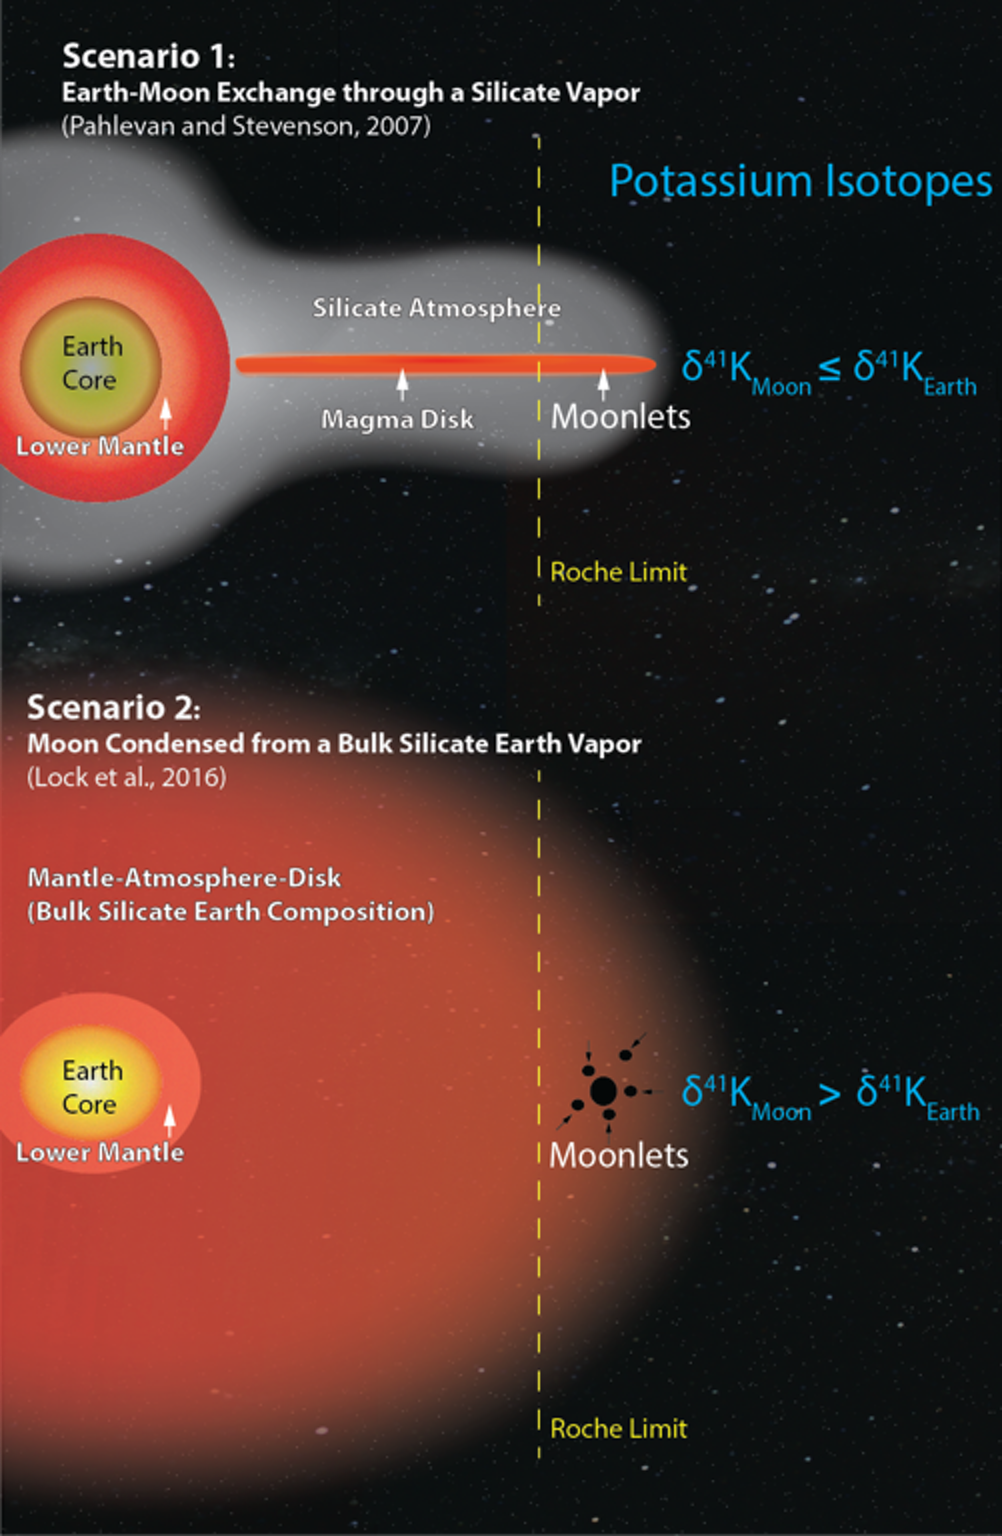 This illustration shows two competing models for the moon's formation. New research supports the second scenario, where a very violent collision vaporized most of Earth's mantle.